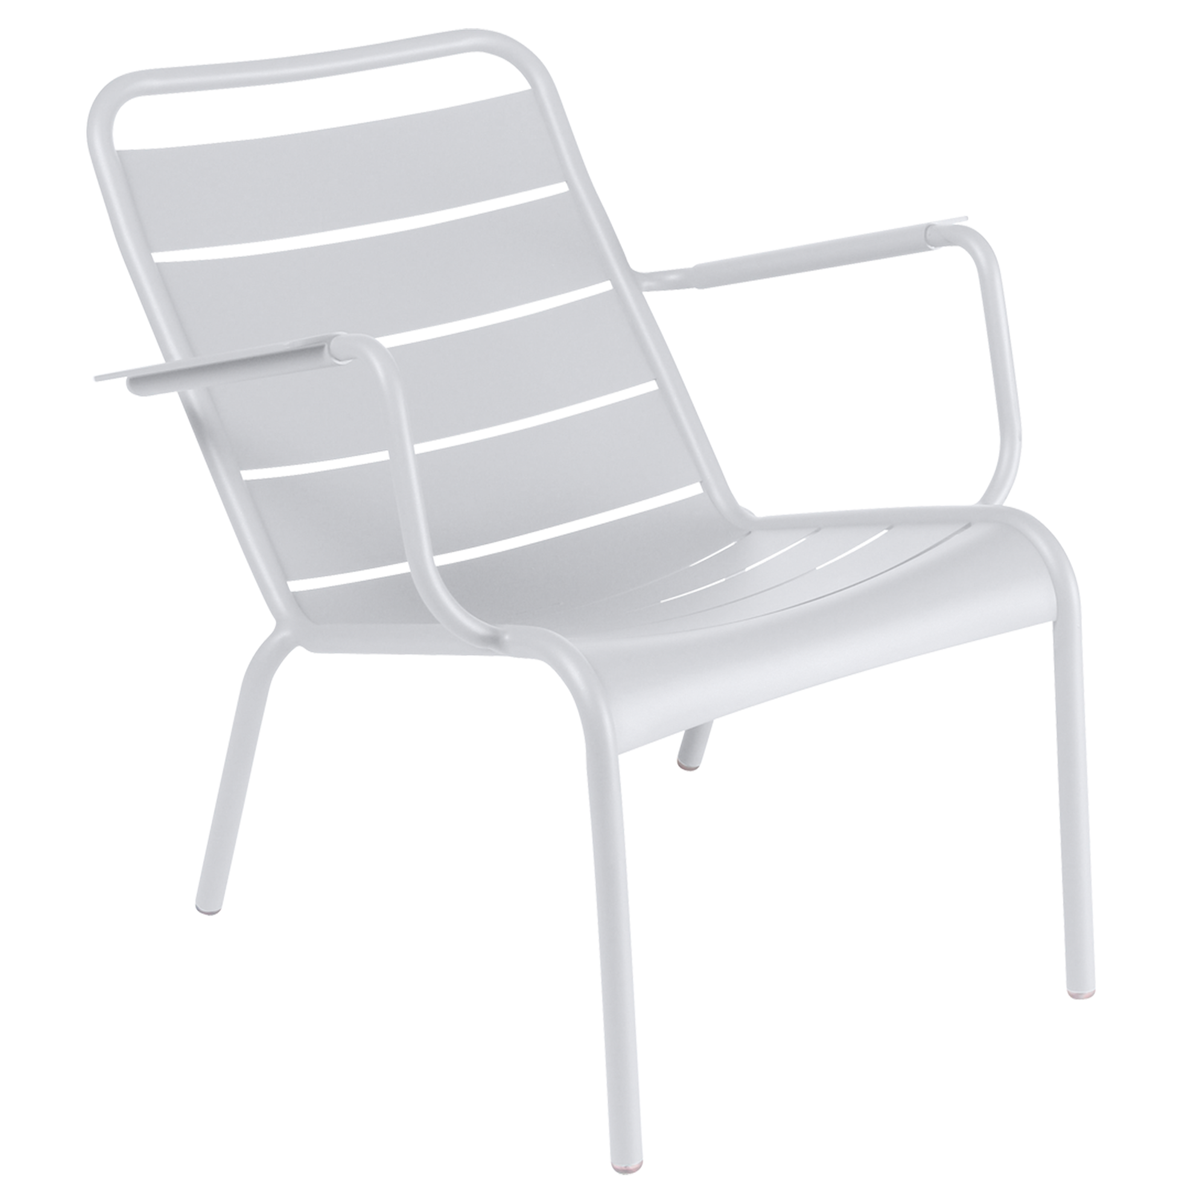 Fermob Luxembourg low armchair, cotton white from Fermob